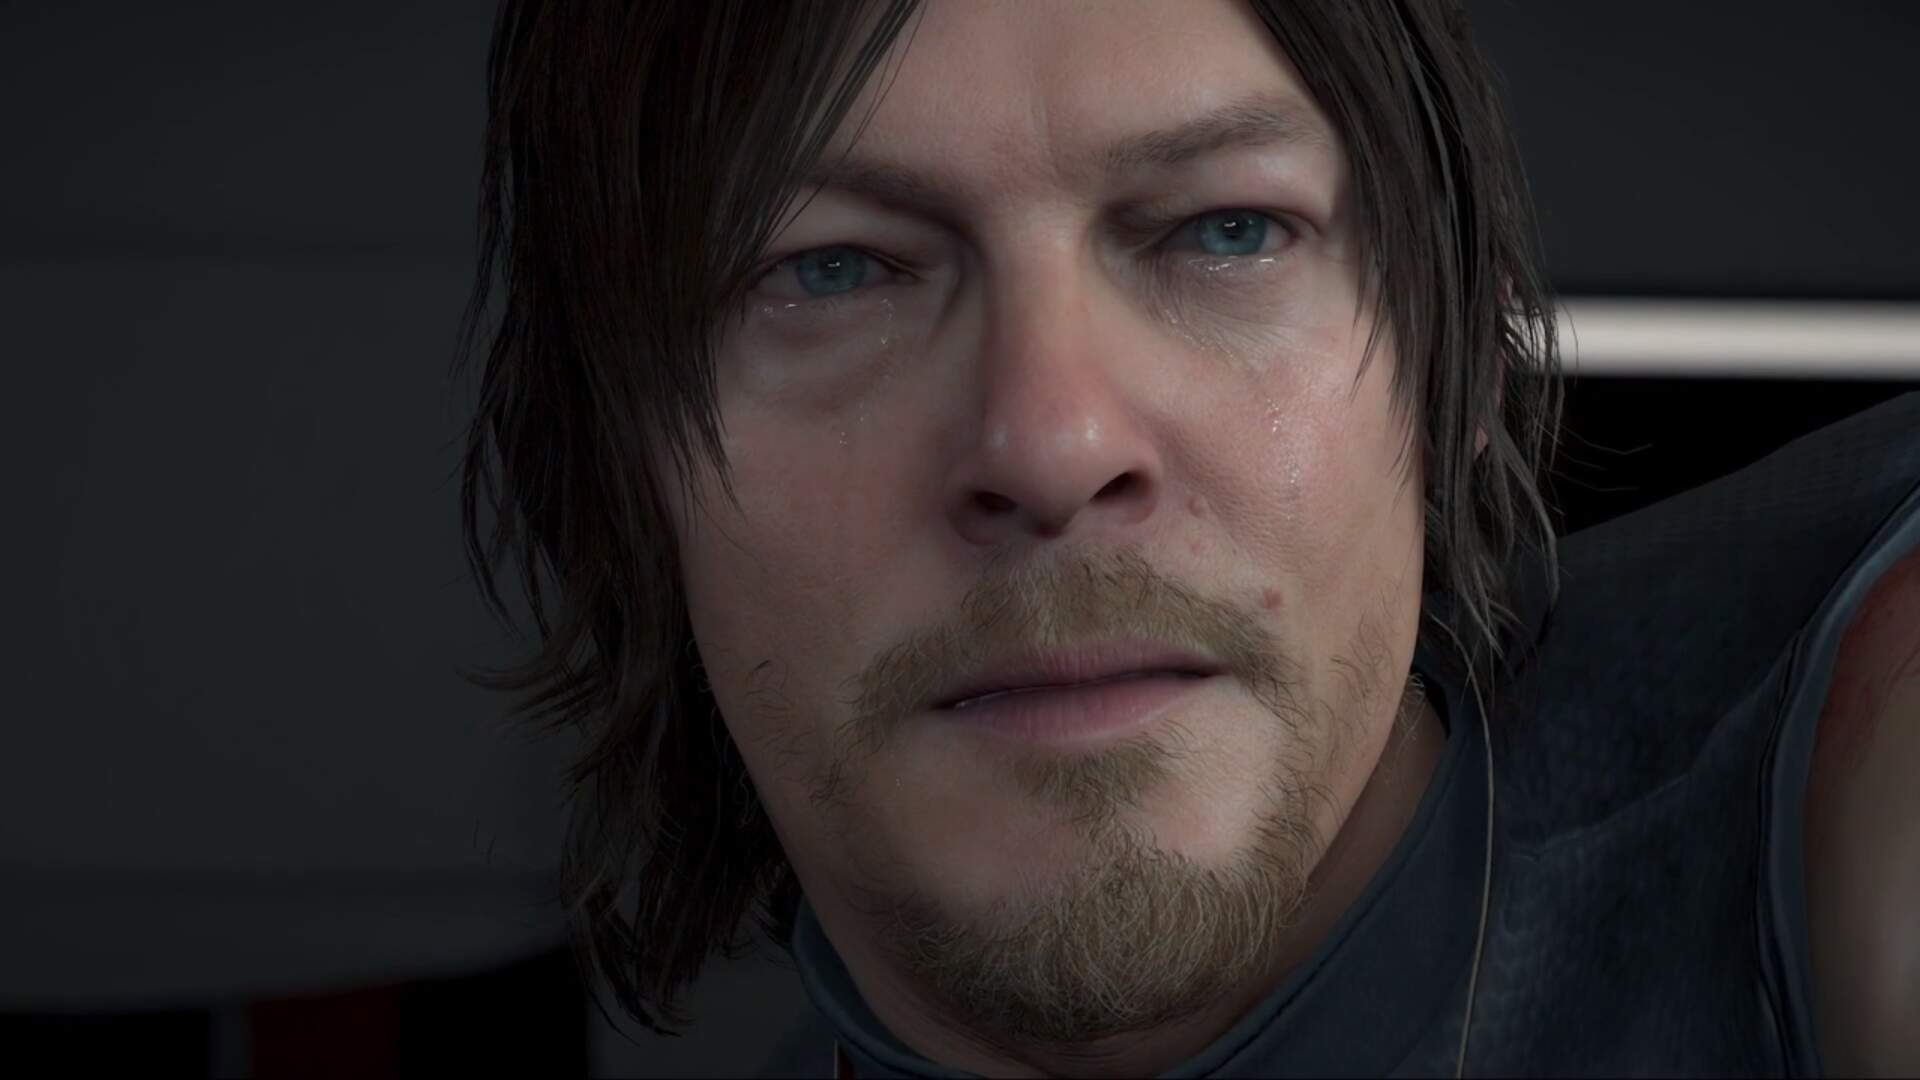 Death Stranding's Official Box Art Shows Off the Many Faces of Norman Reedus